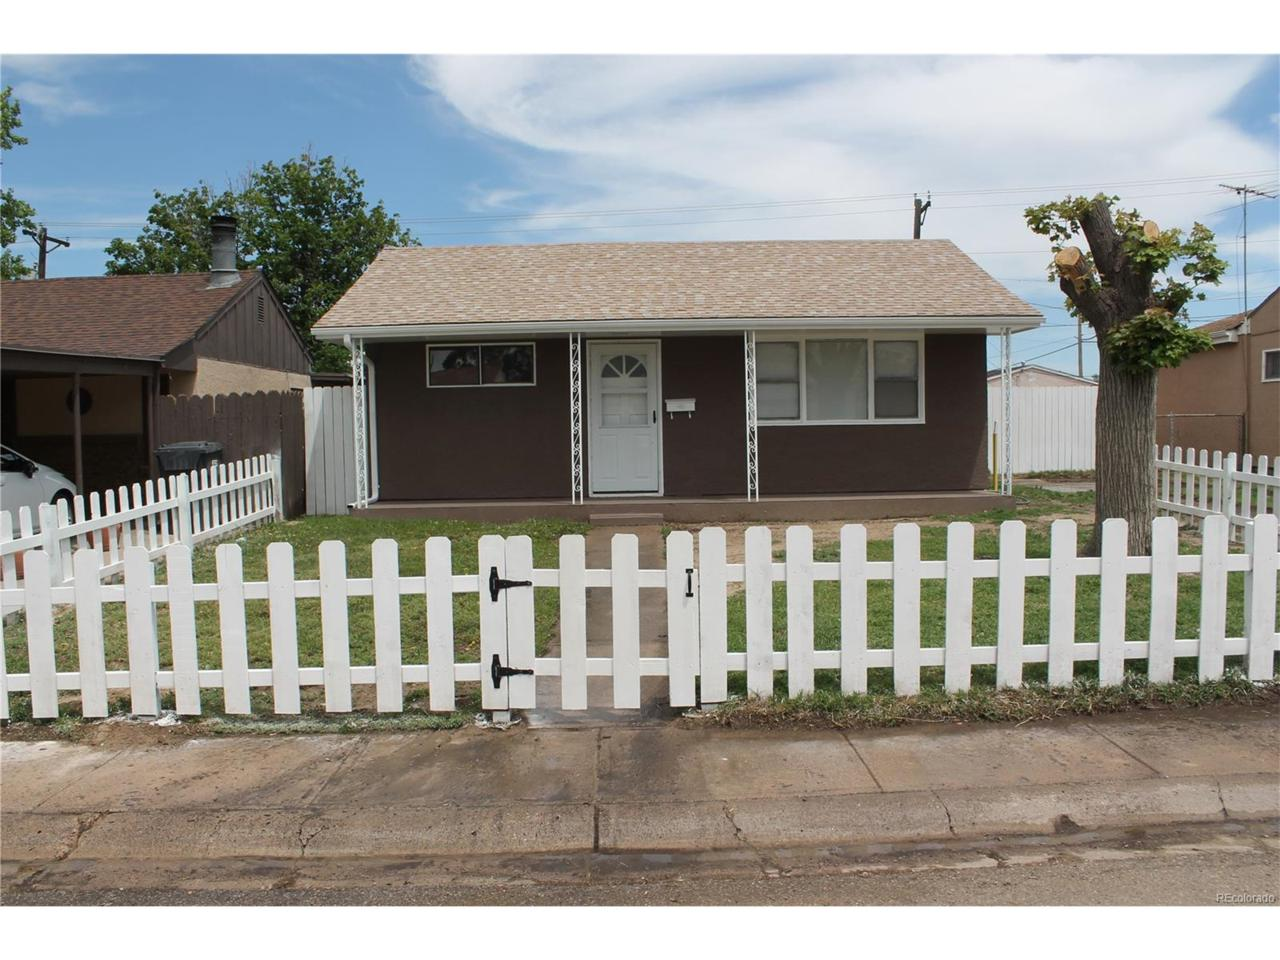 1728 Quillian Avenue, Pueblo, CO 81005 (MLS #6368041) :: 8z Real Estate